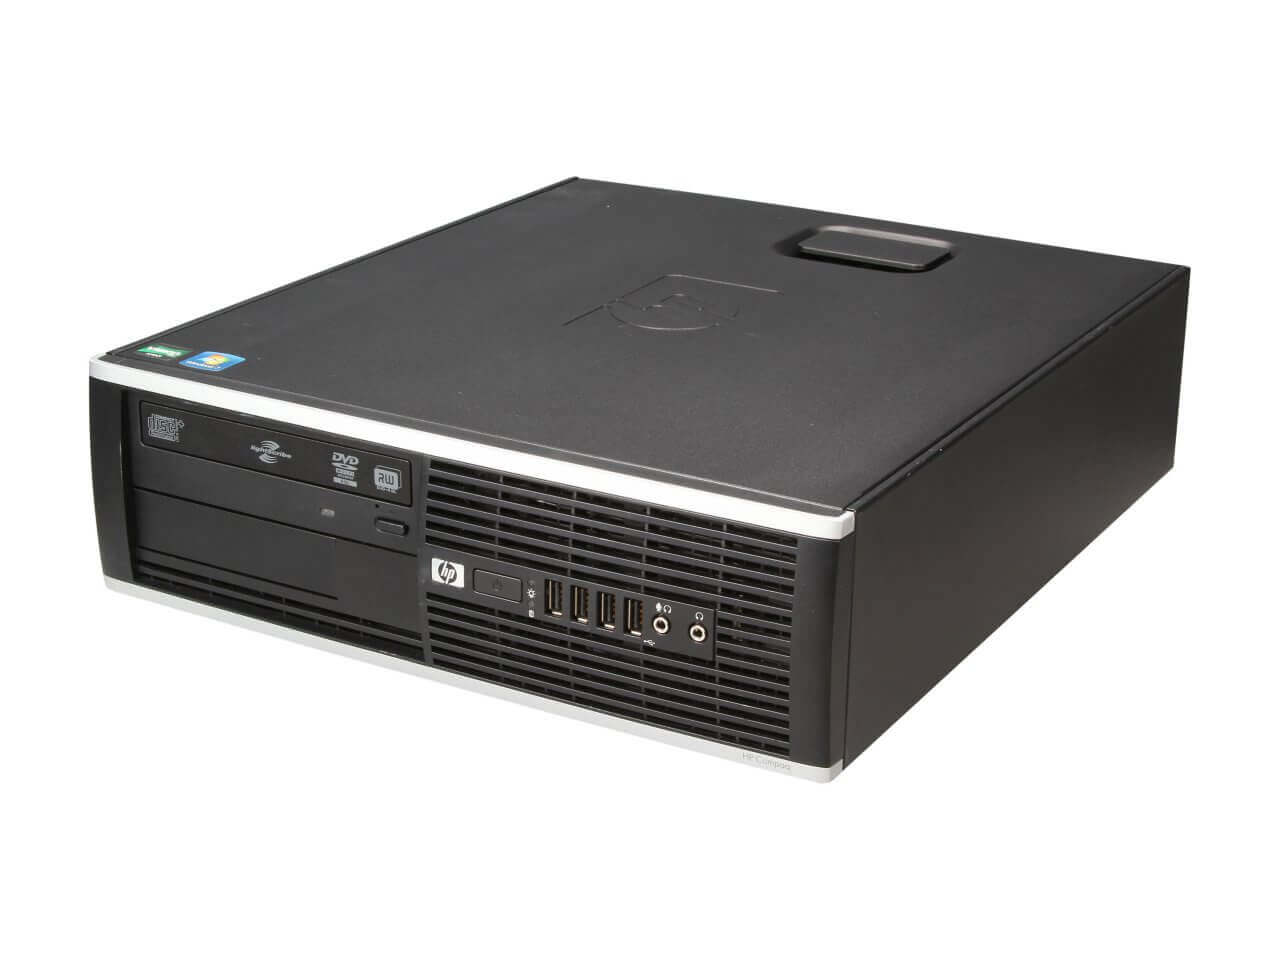 HP COMPAQ PRO 6005 SFF AMD ATHLON II X2 B28 3.4 / 4096 MB DDR3 / 500 GB / DVD-RW / NO COA